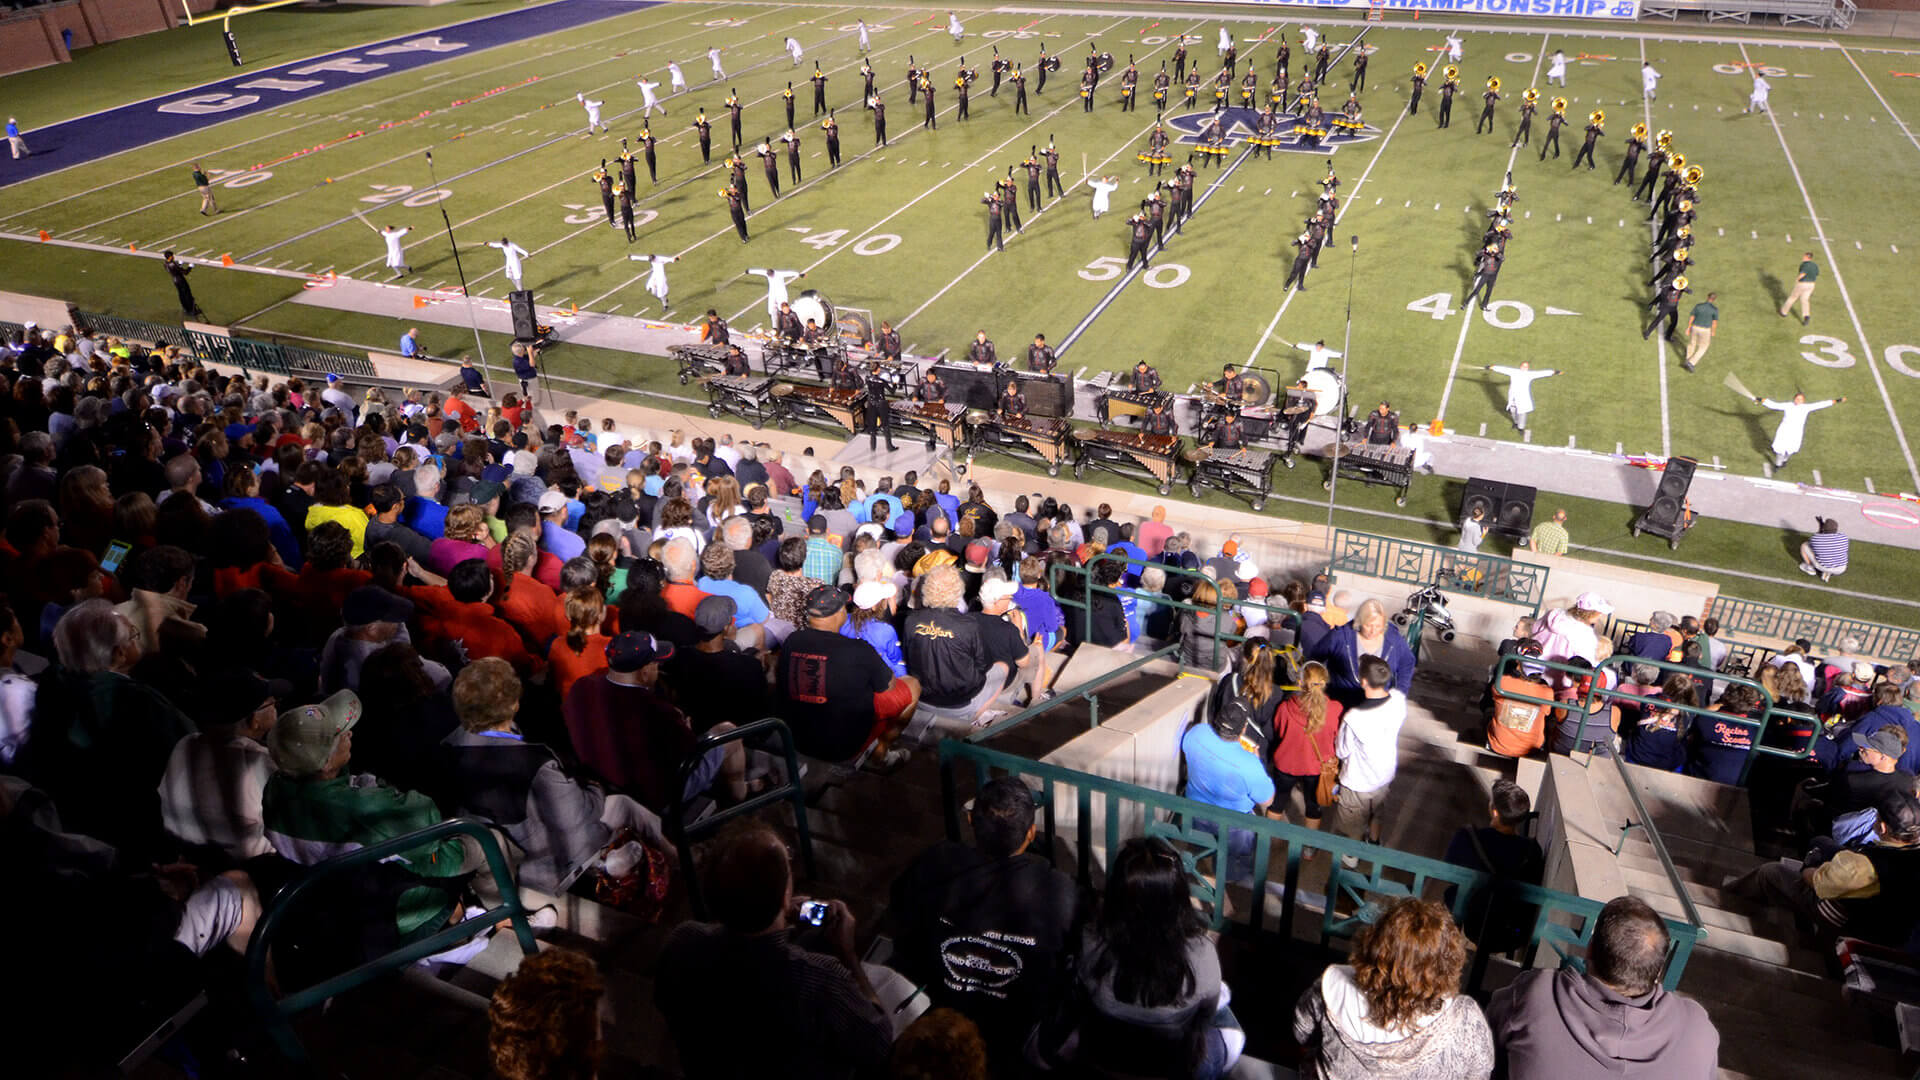 DCI Parents: Following the Corps